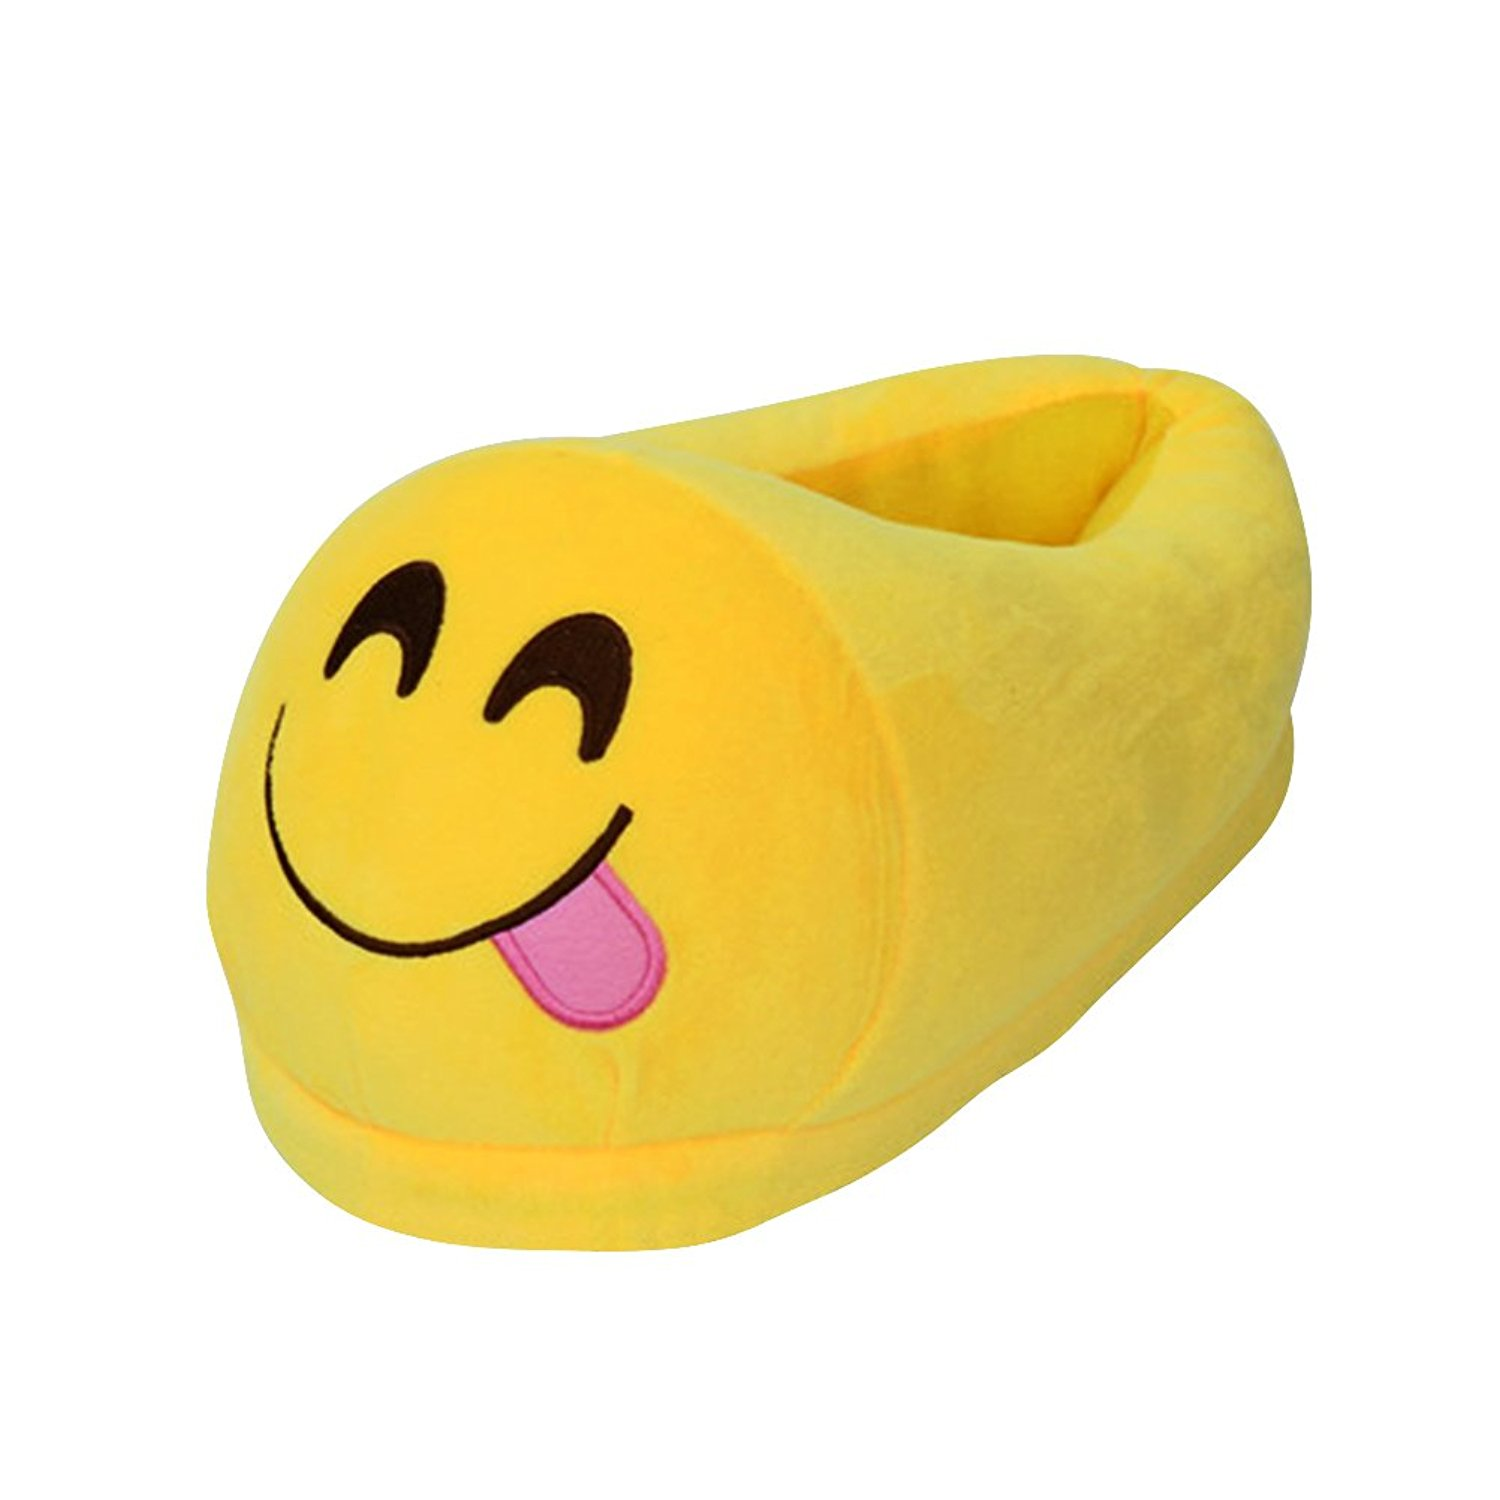 b8b908c4f Get Quotations · OULII Cotton Winter House Slippers Funny Plush Slippers  Non Slip Cute Indoor Slippers (Fun Smiley